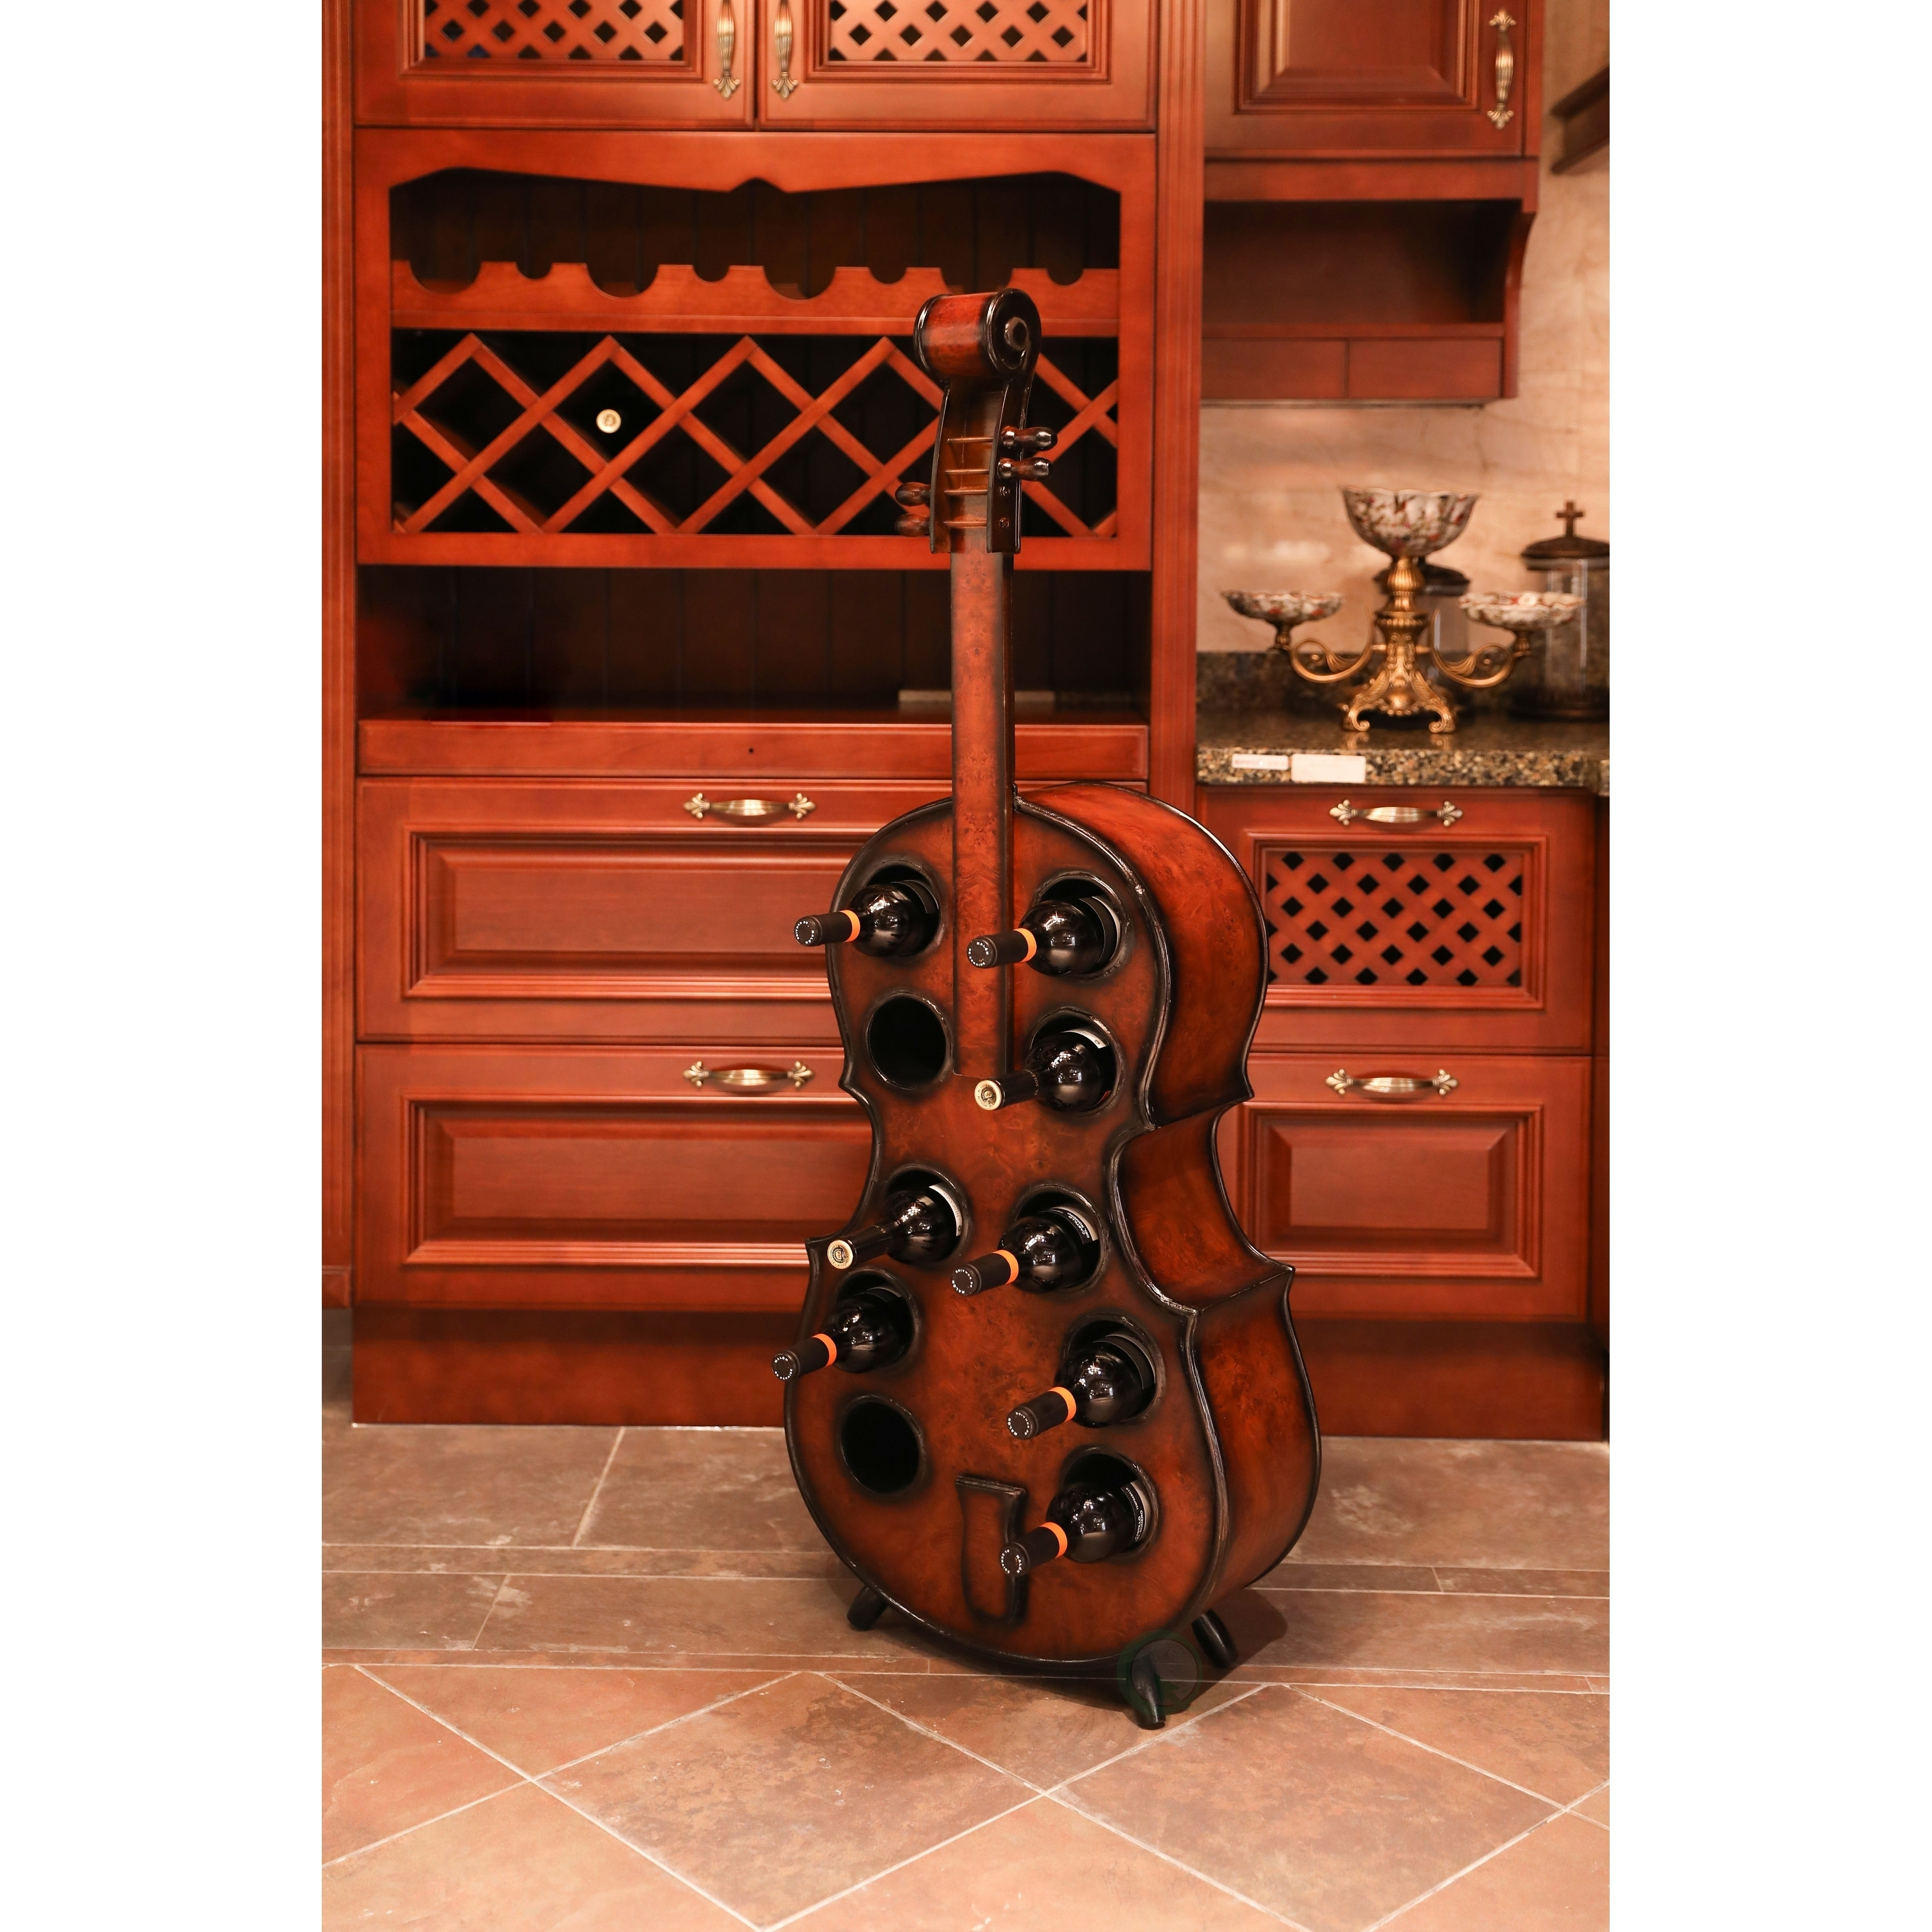 Decorative Metal Wine Racks Wooden Violin Shaped Wine Rack 10 Bottle Decorative Wine Holder